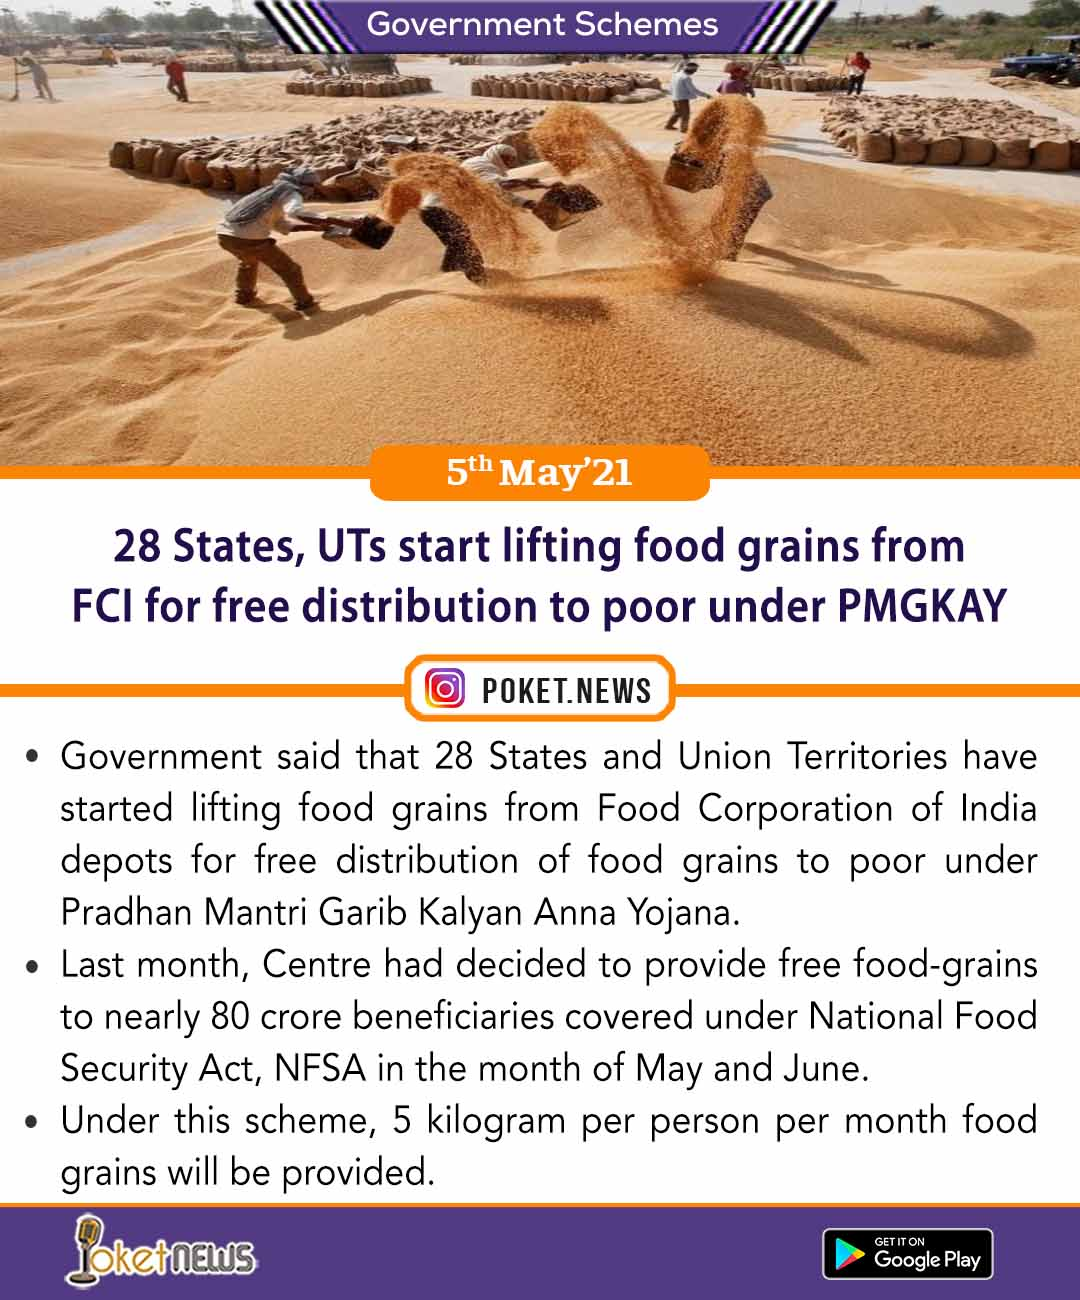 28 States, UTs start lifting food grains from FCI for free distribution to poor under PMGKAY